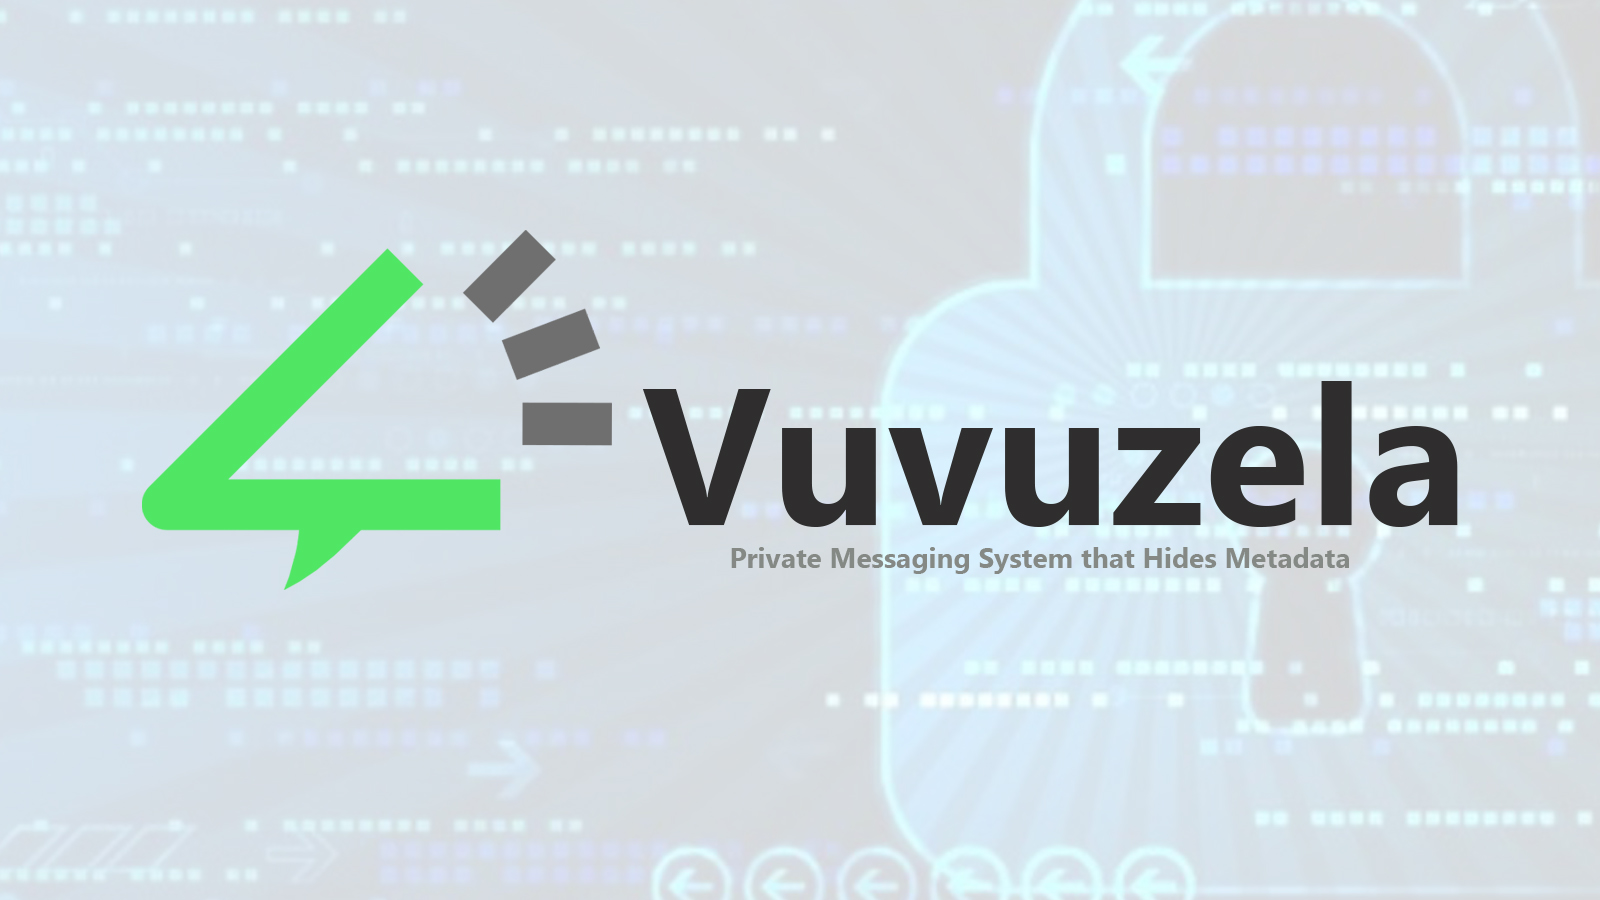 Vuvuzela - Private Messaging System that Hides Metadata